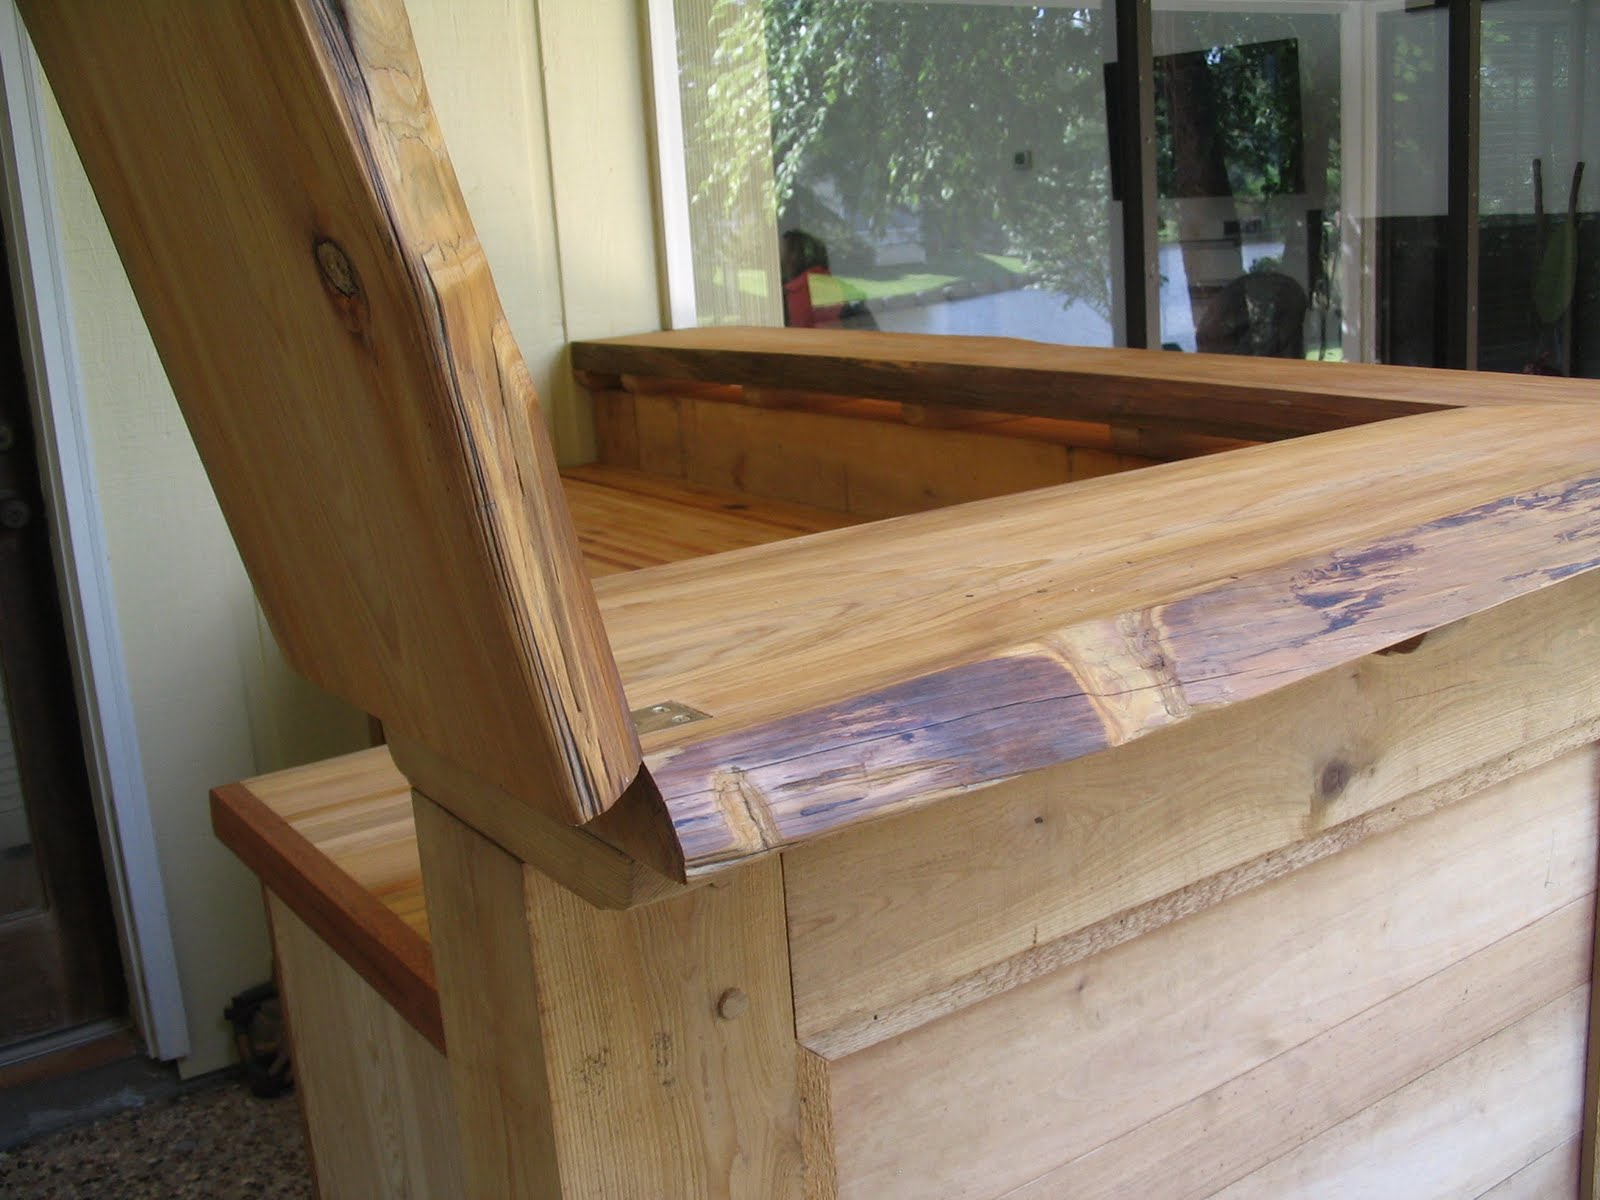 Charmant The Bar Top Includes The Largest Miter Joint I Have Done To Date And A Flip Up  Door With Inlaid Brass Hinges.